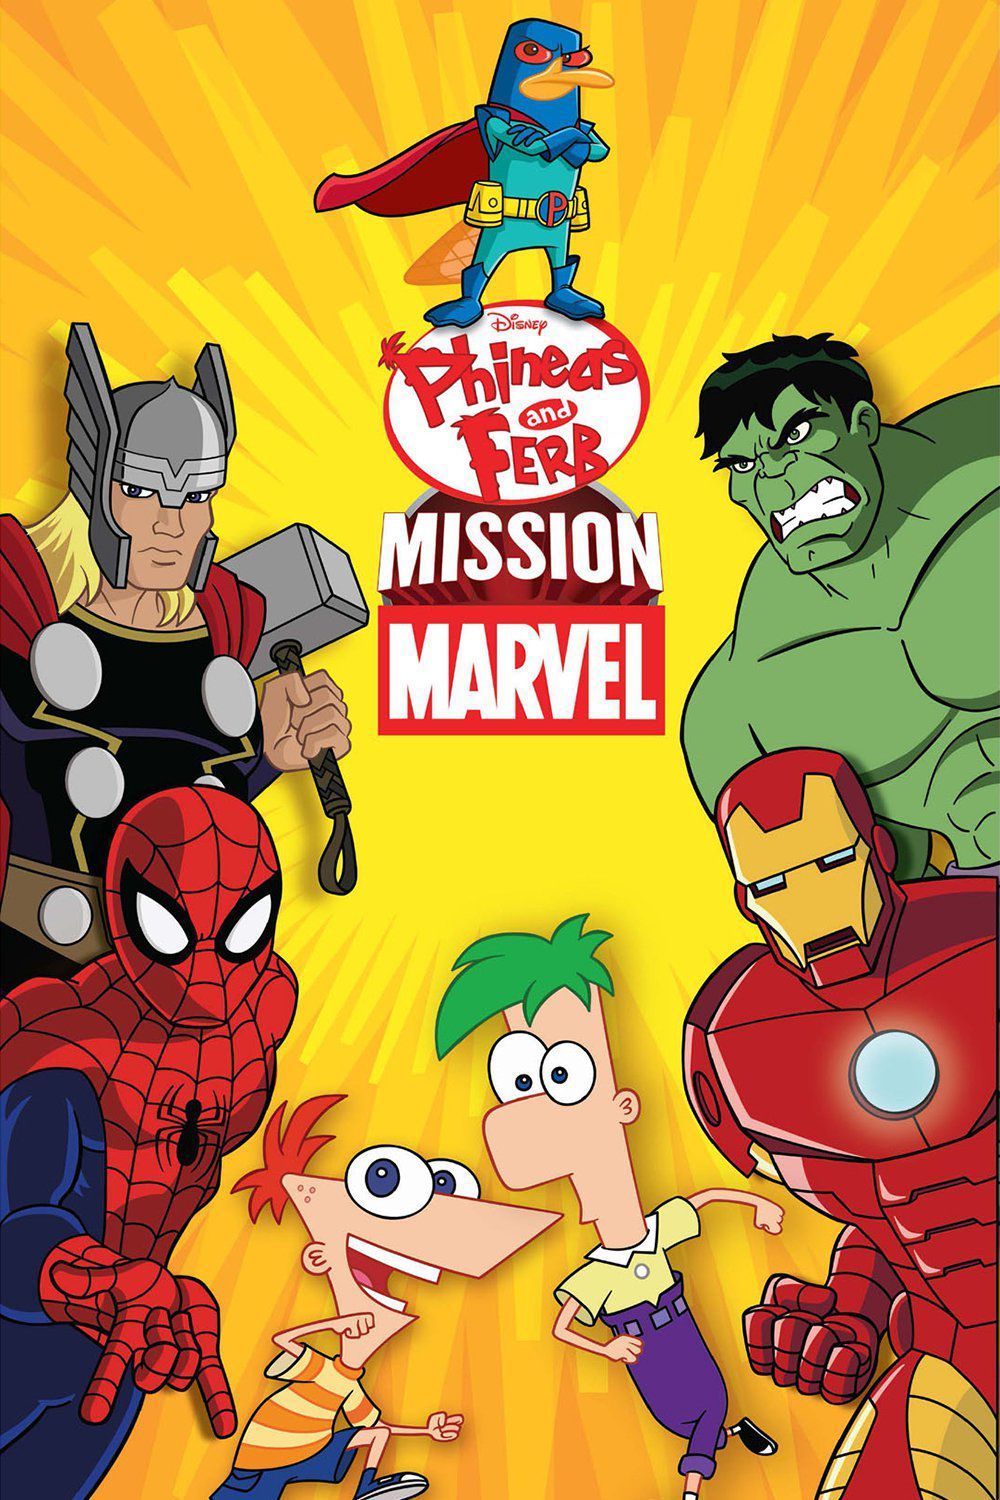 affiche poster phineas ferb mission marvel disney